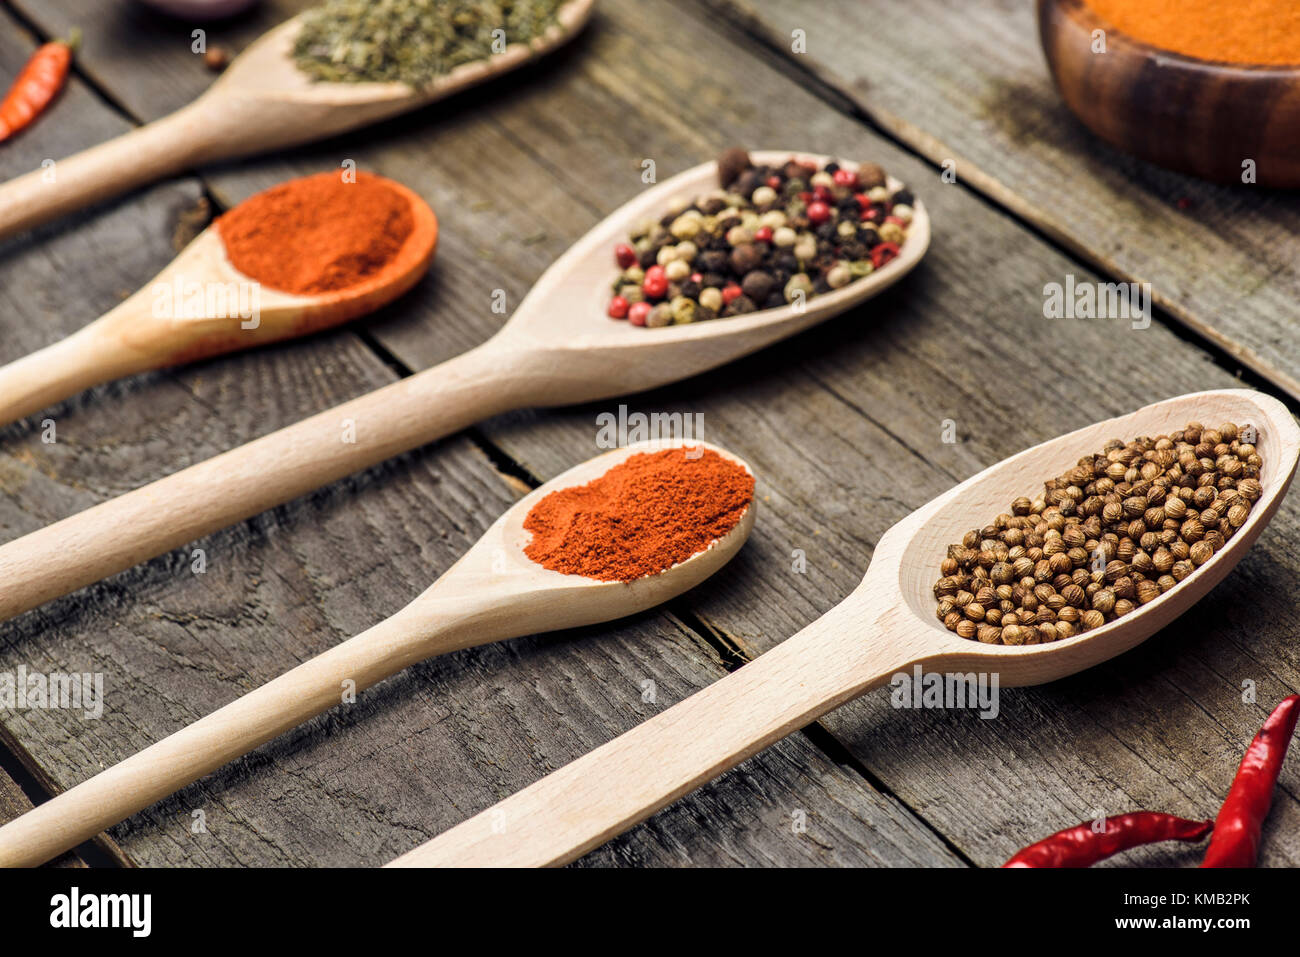 Wooden ladles with different spices - Stock Image